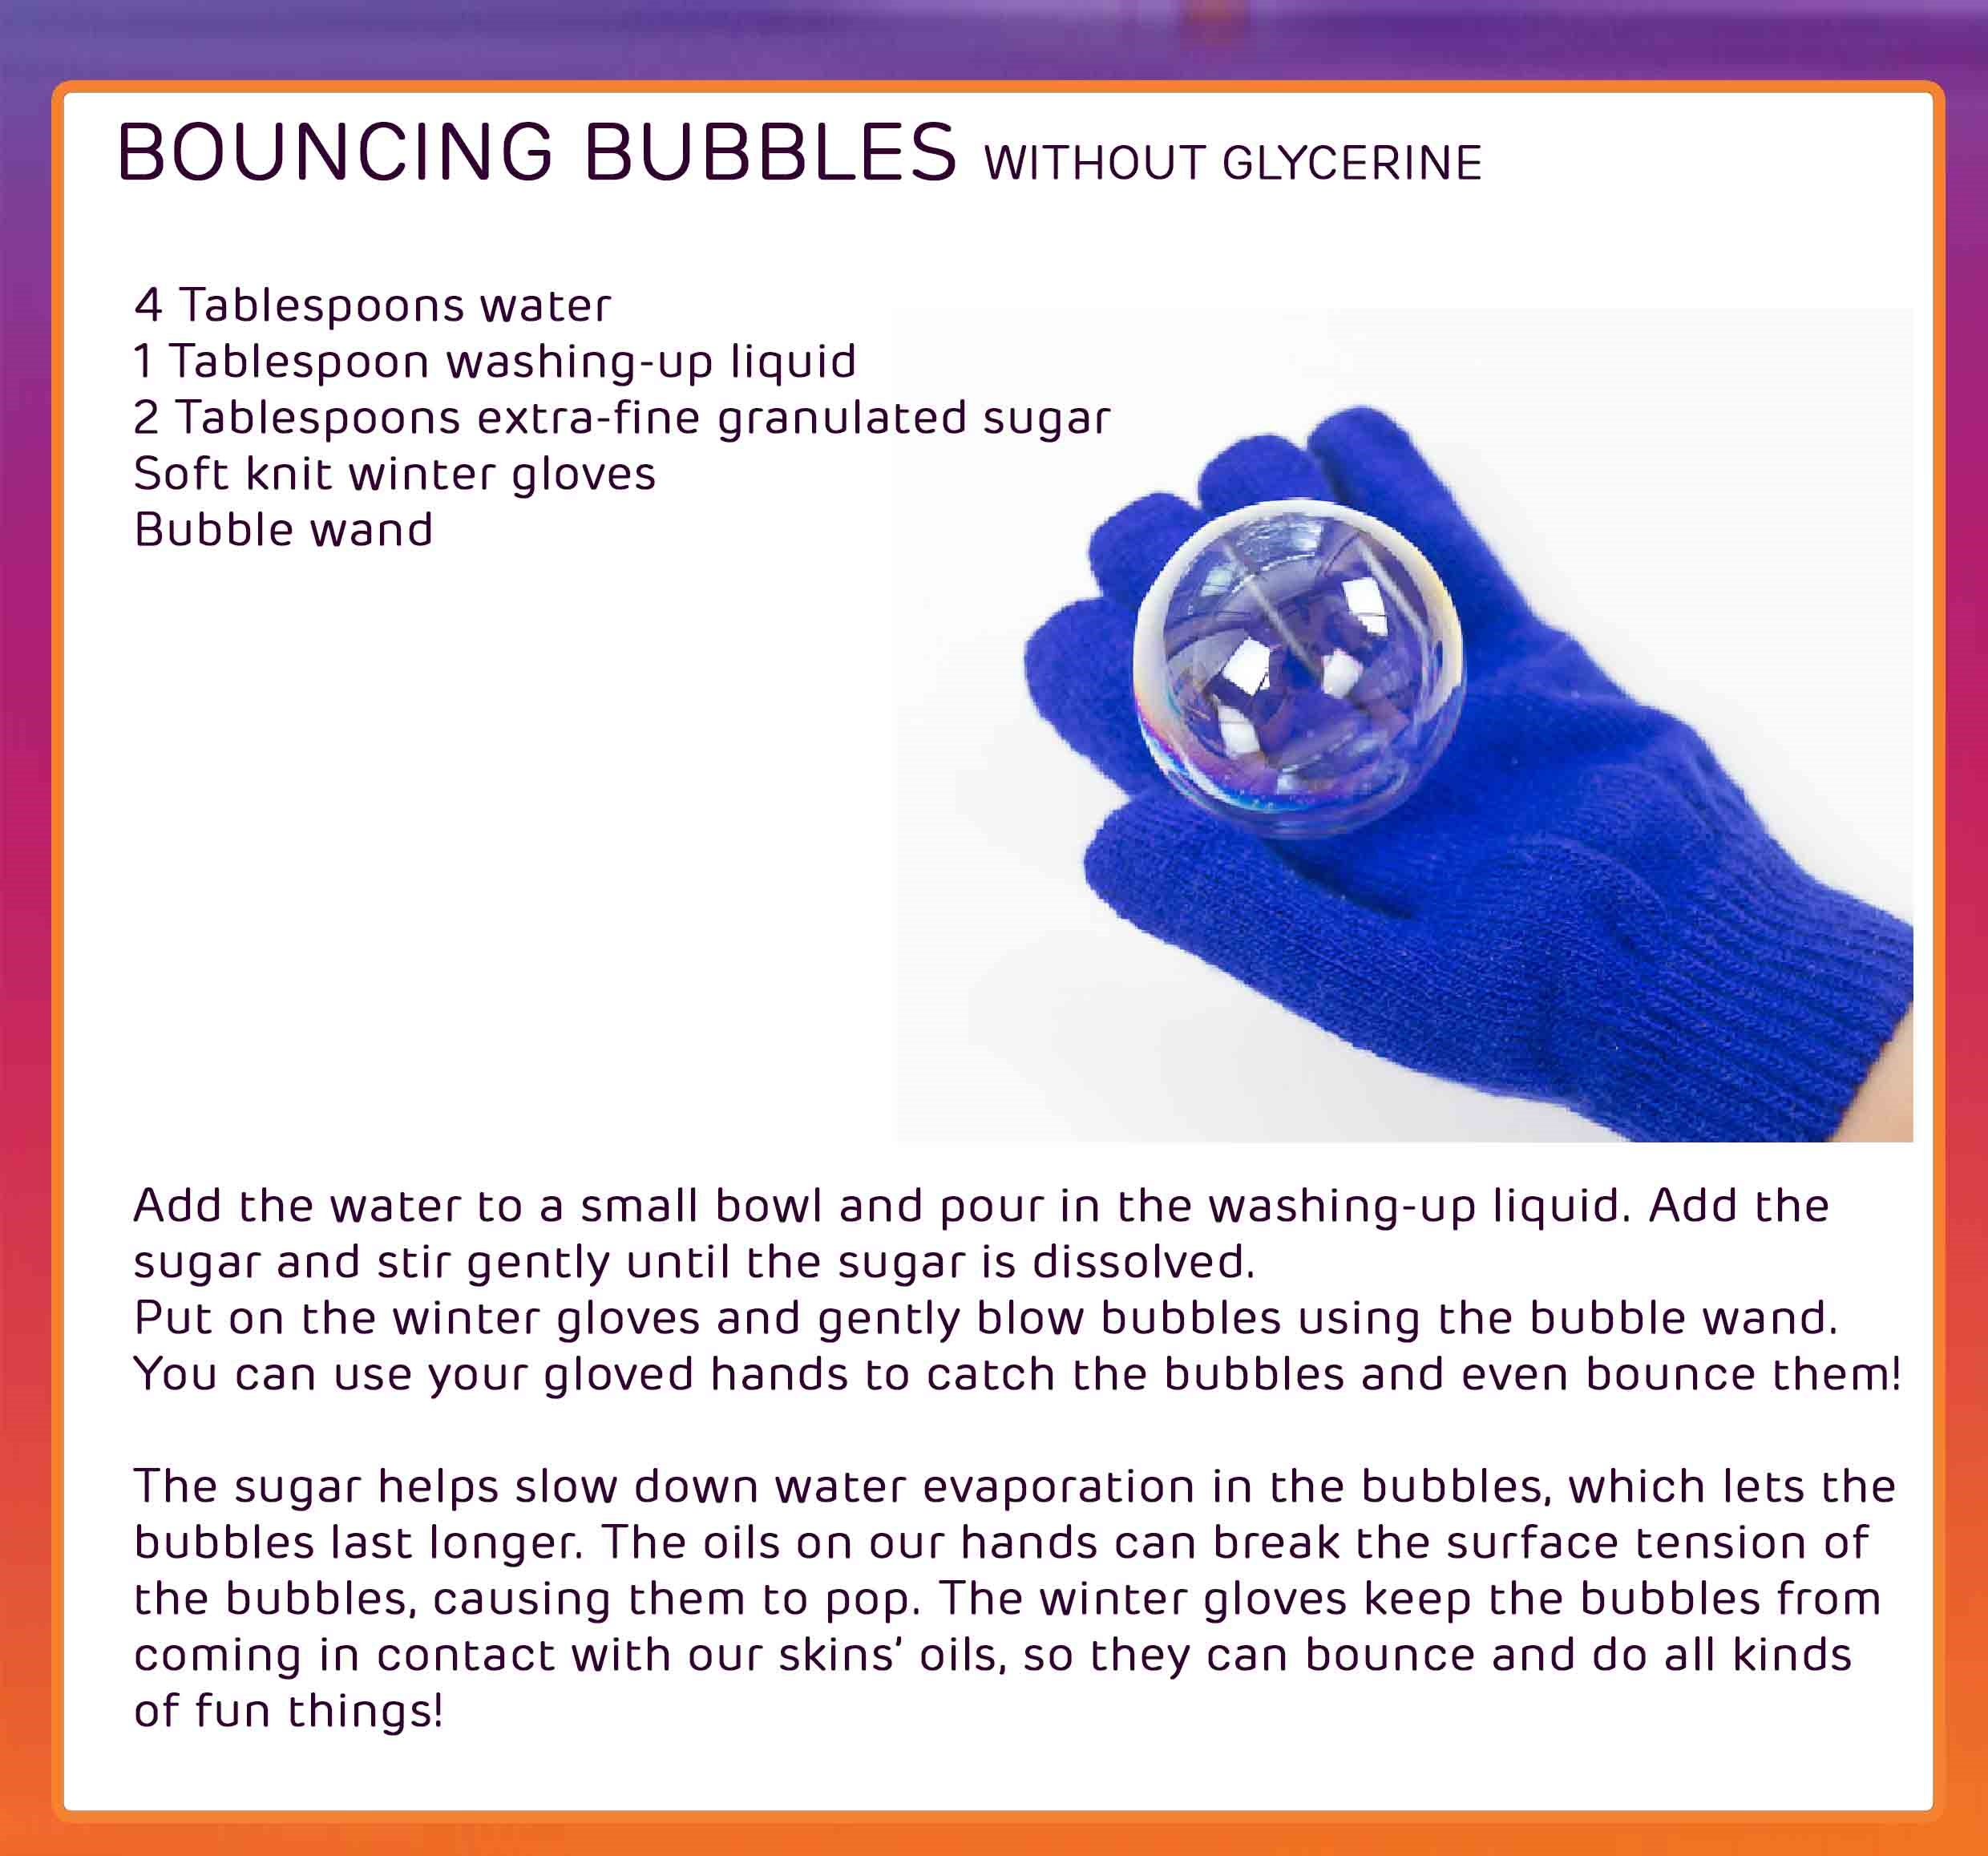 NCN BOUNCING BUBBLES